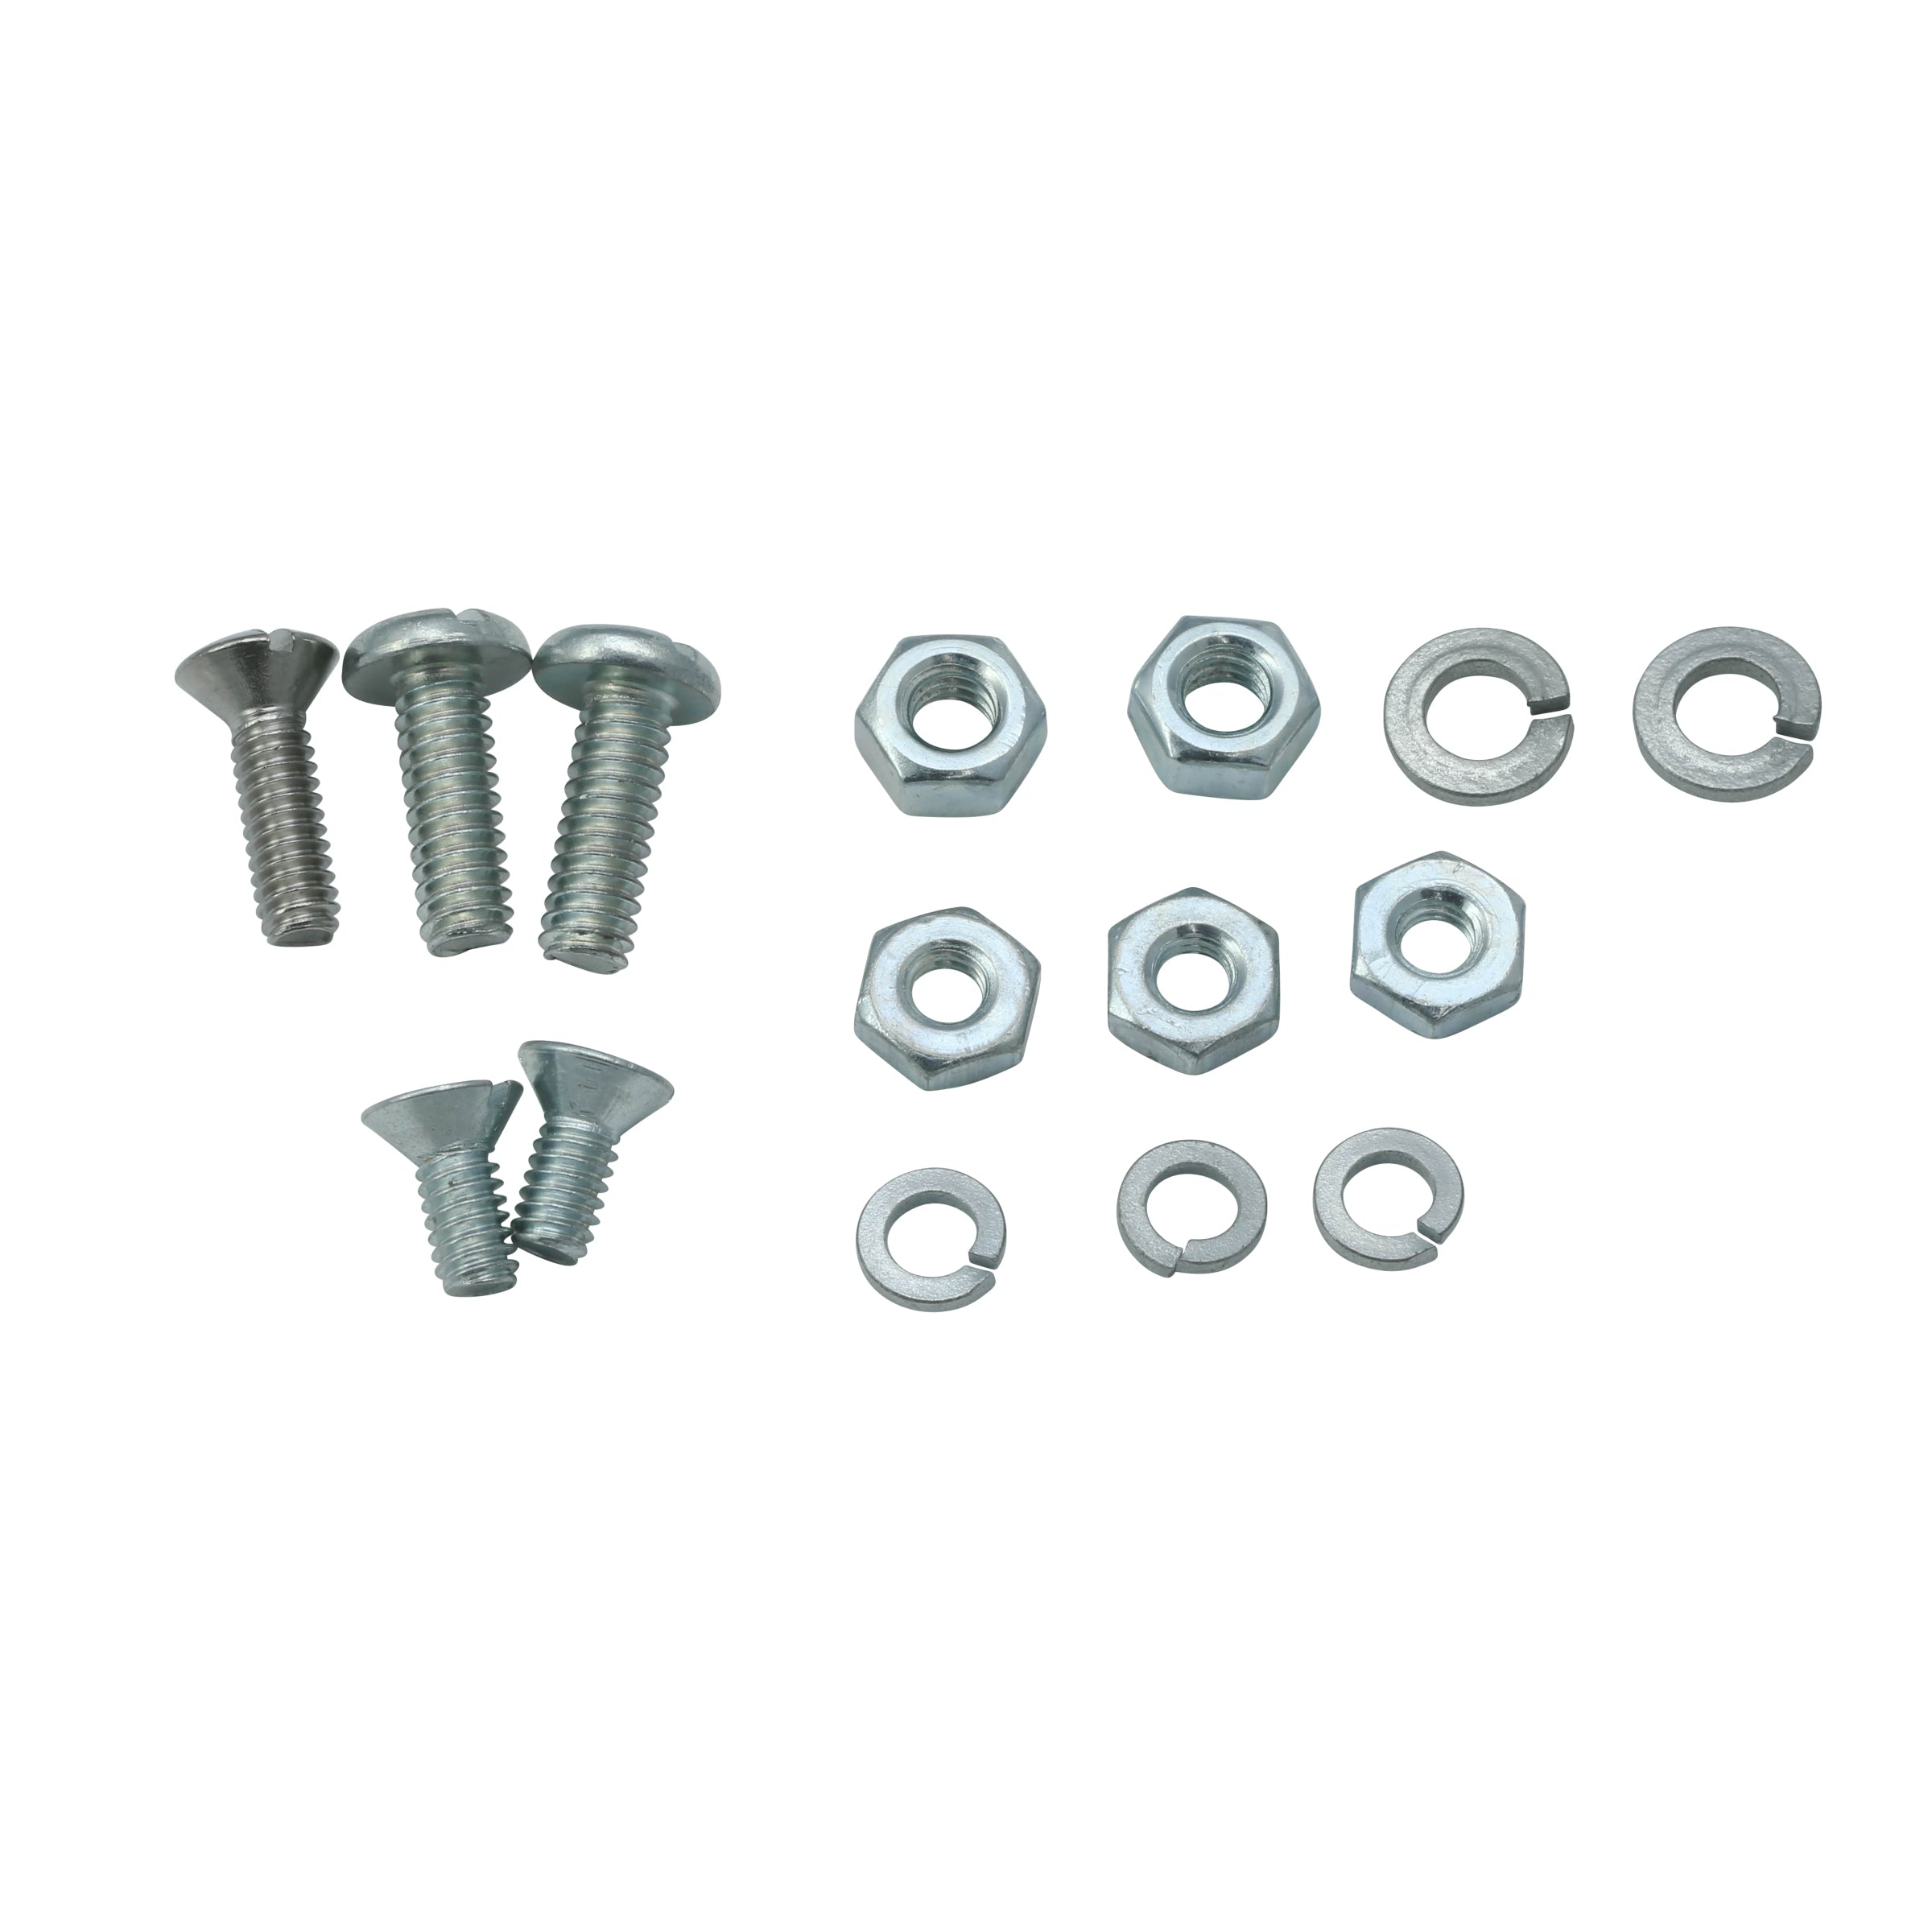 Grille Mounting Hardware Kit • 1940 Ford Standard & 1940-41 Ford Pickup